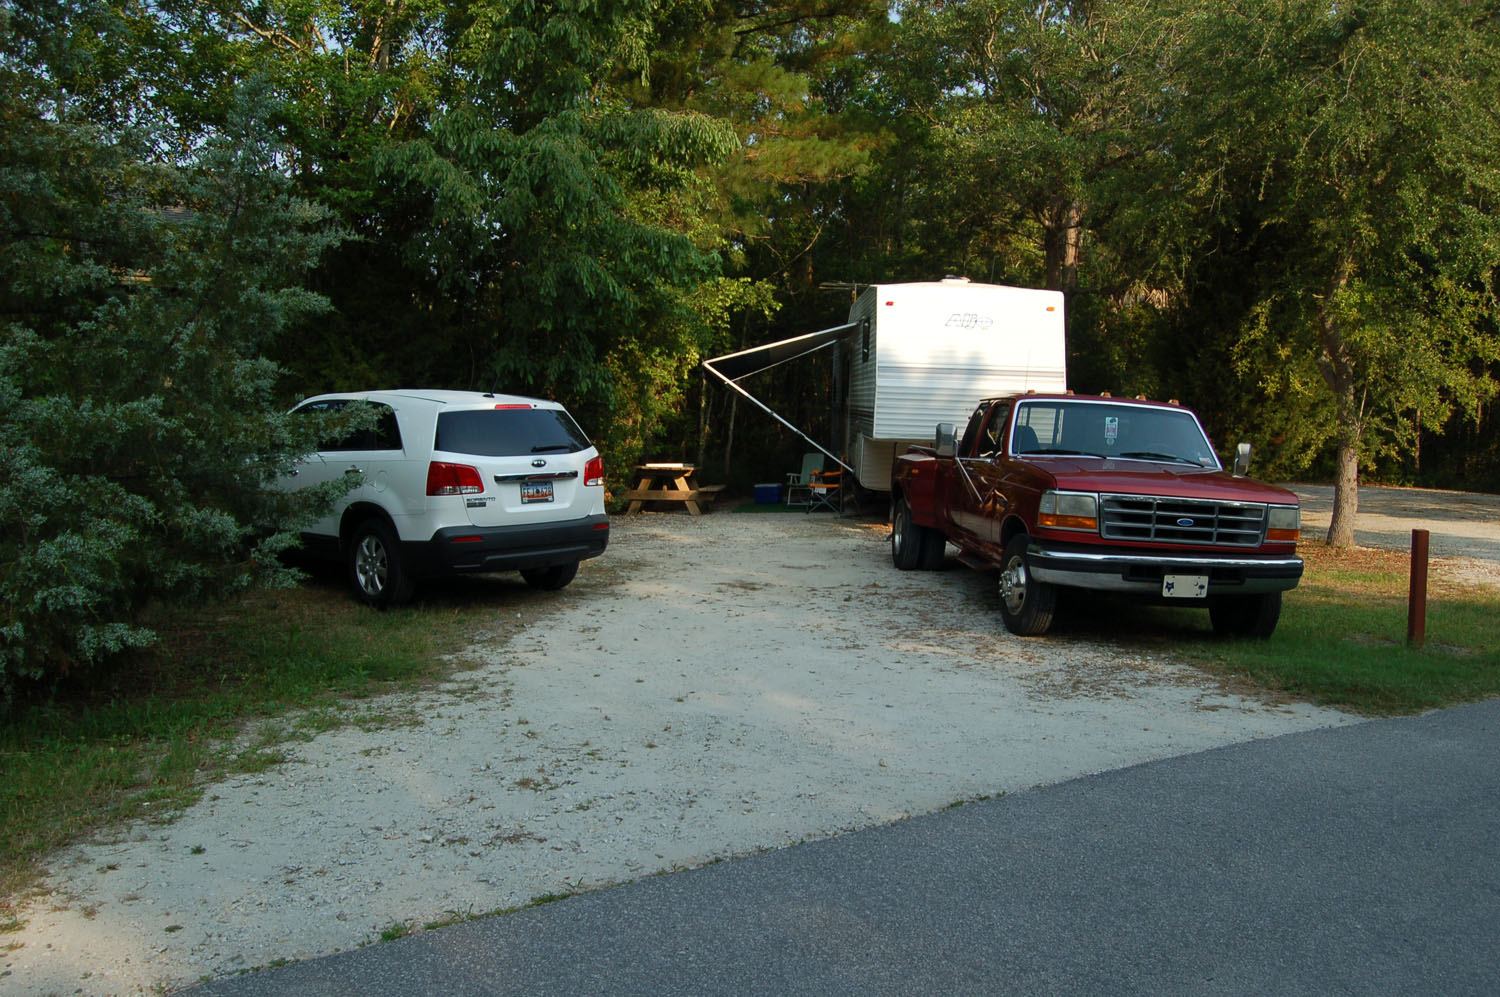 Image of campsite #60 at the Campground at James Island County Park